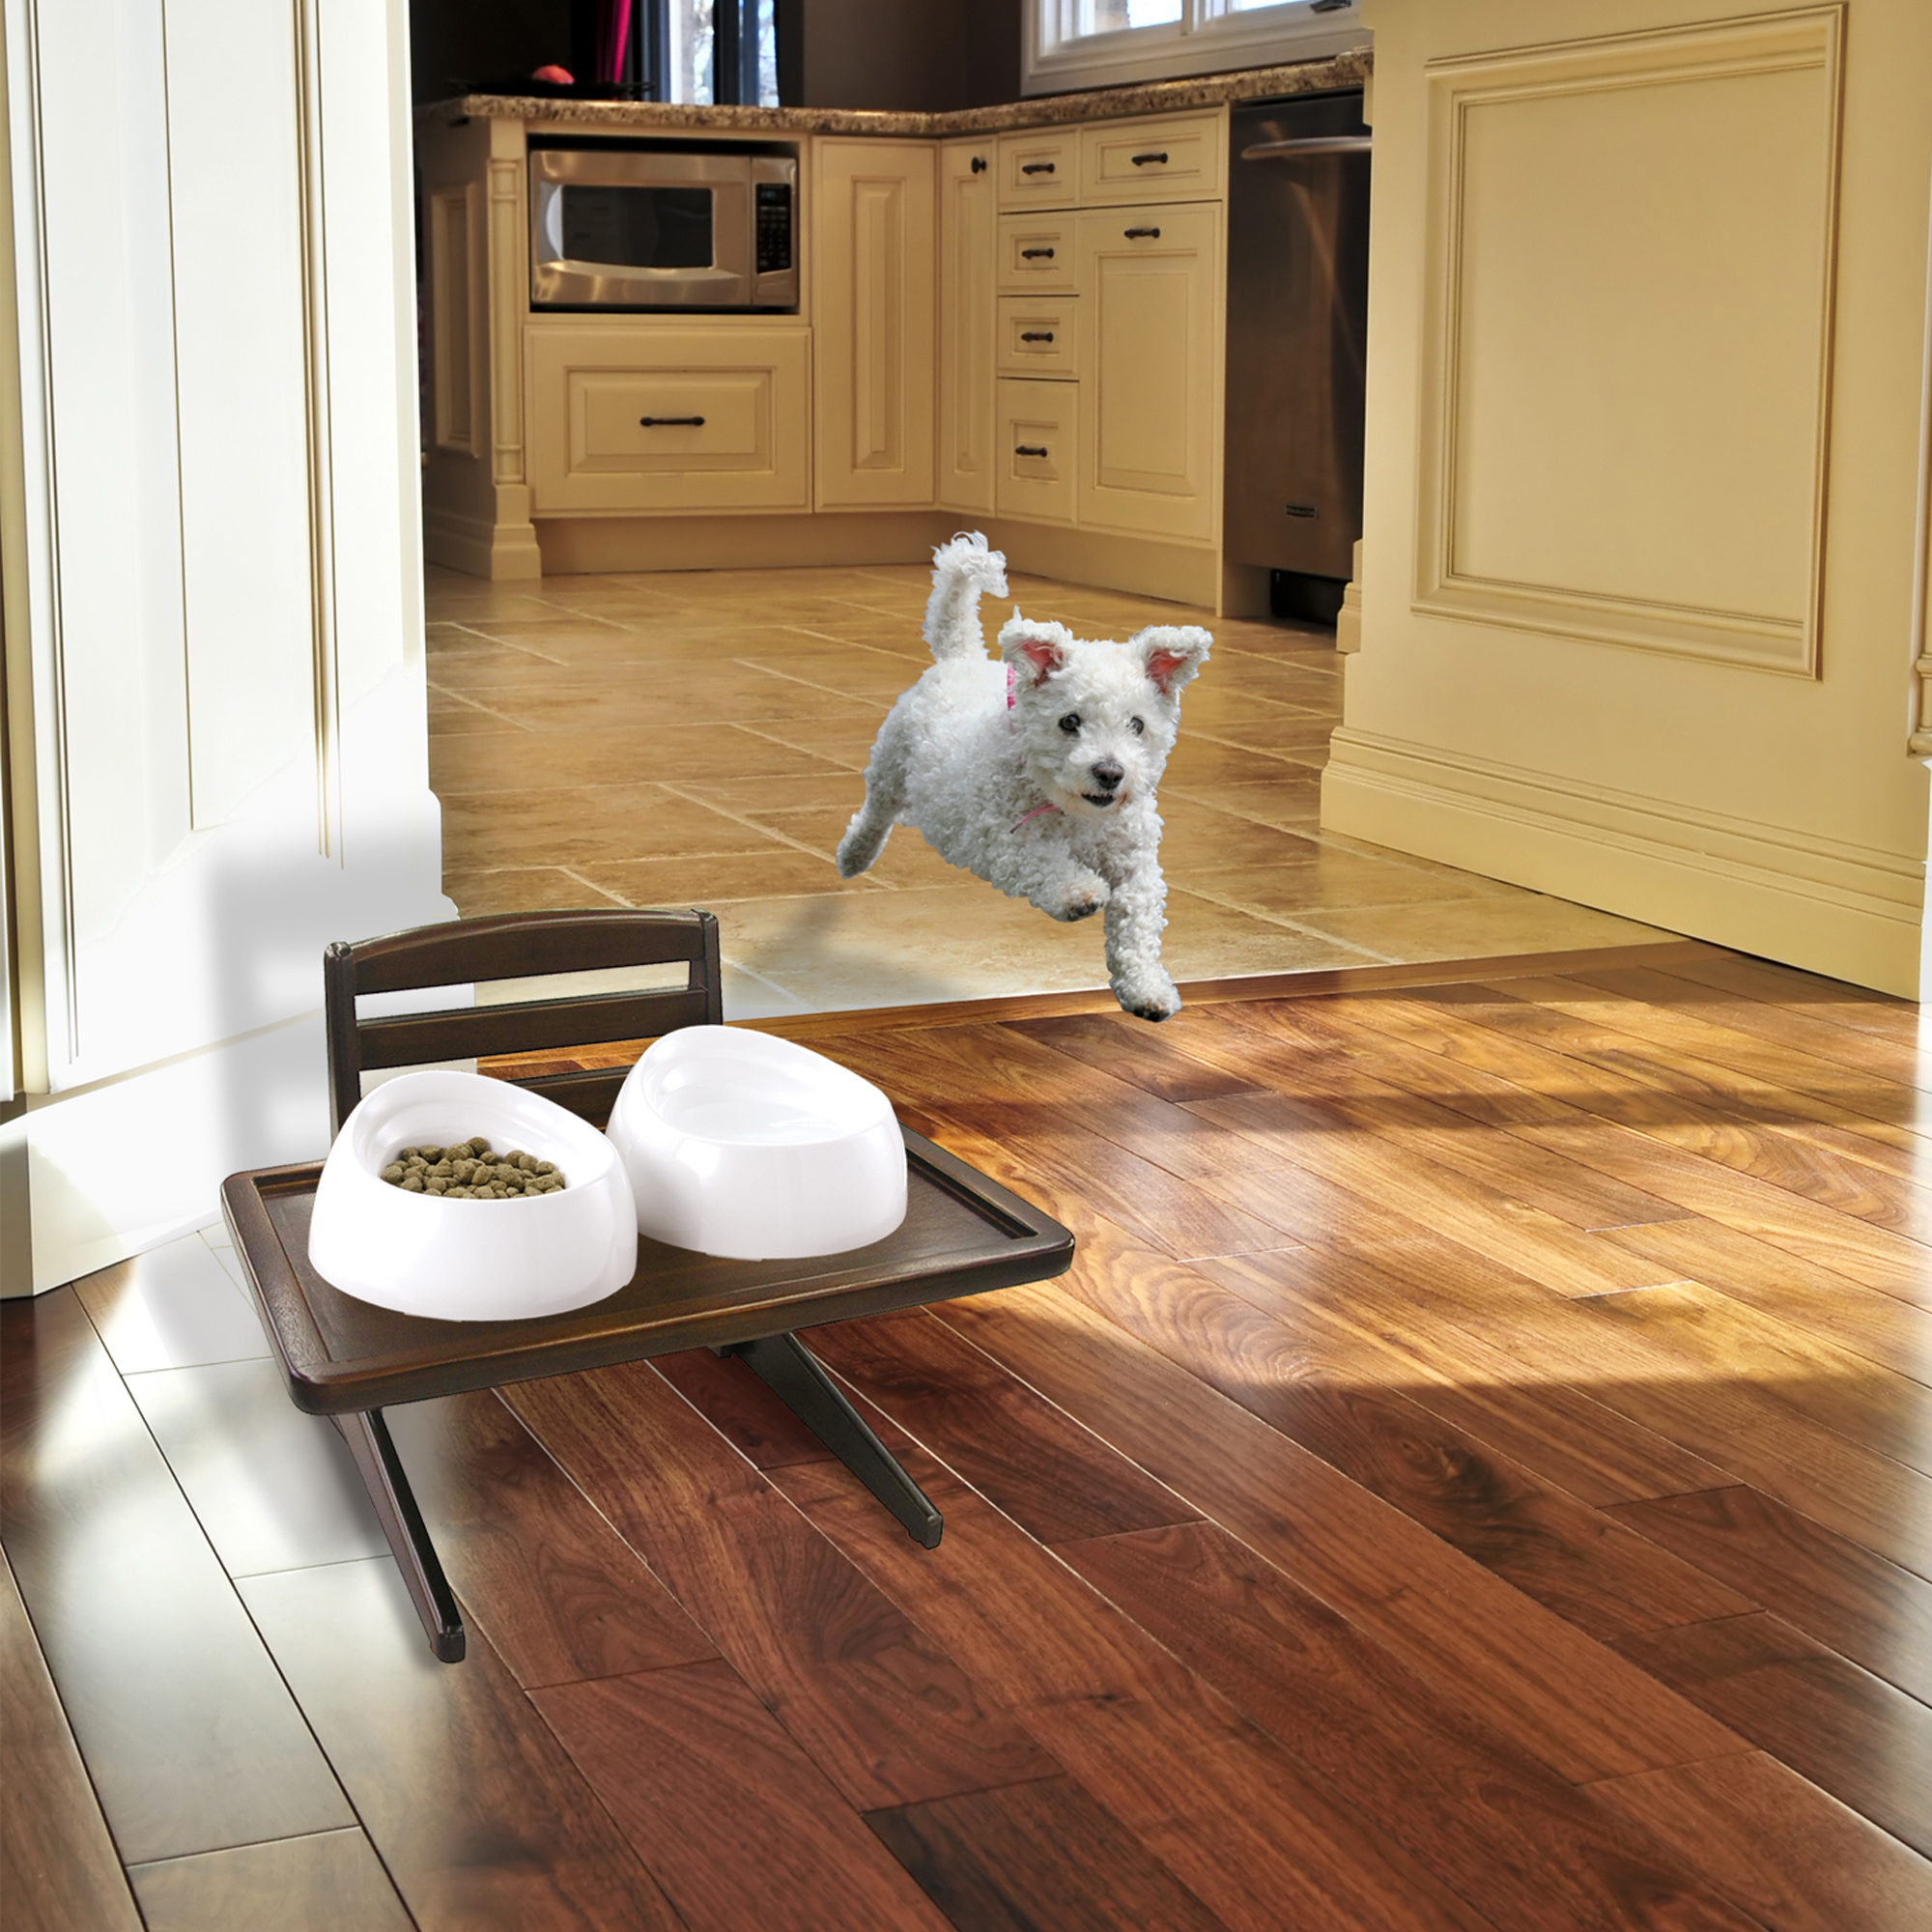 Charming Eco Friendly Pet Furniture For Your Furry Friends: Fall Colors Inspire Green Shopping